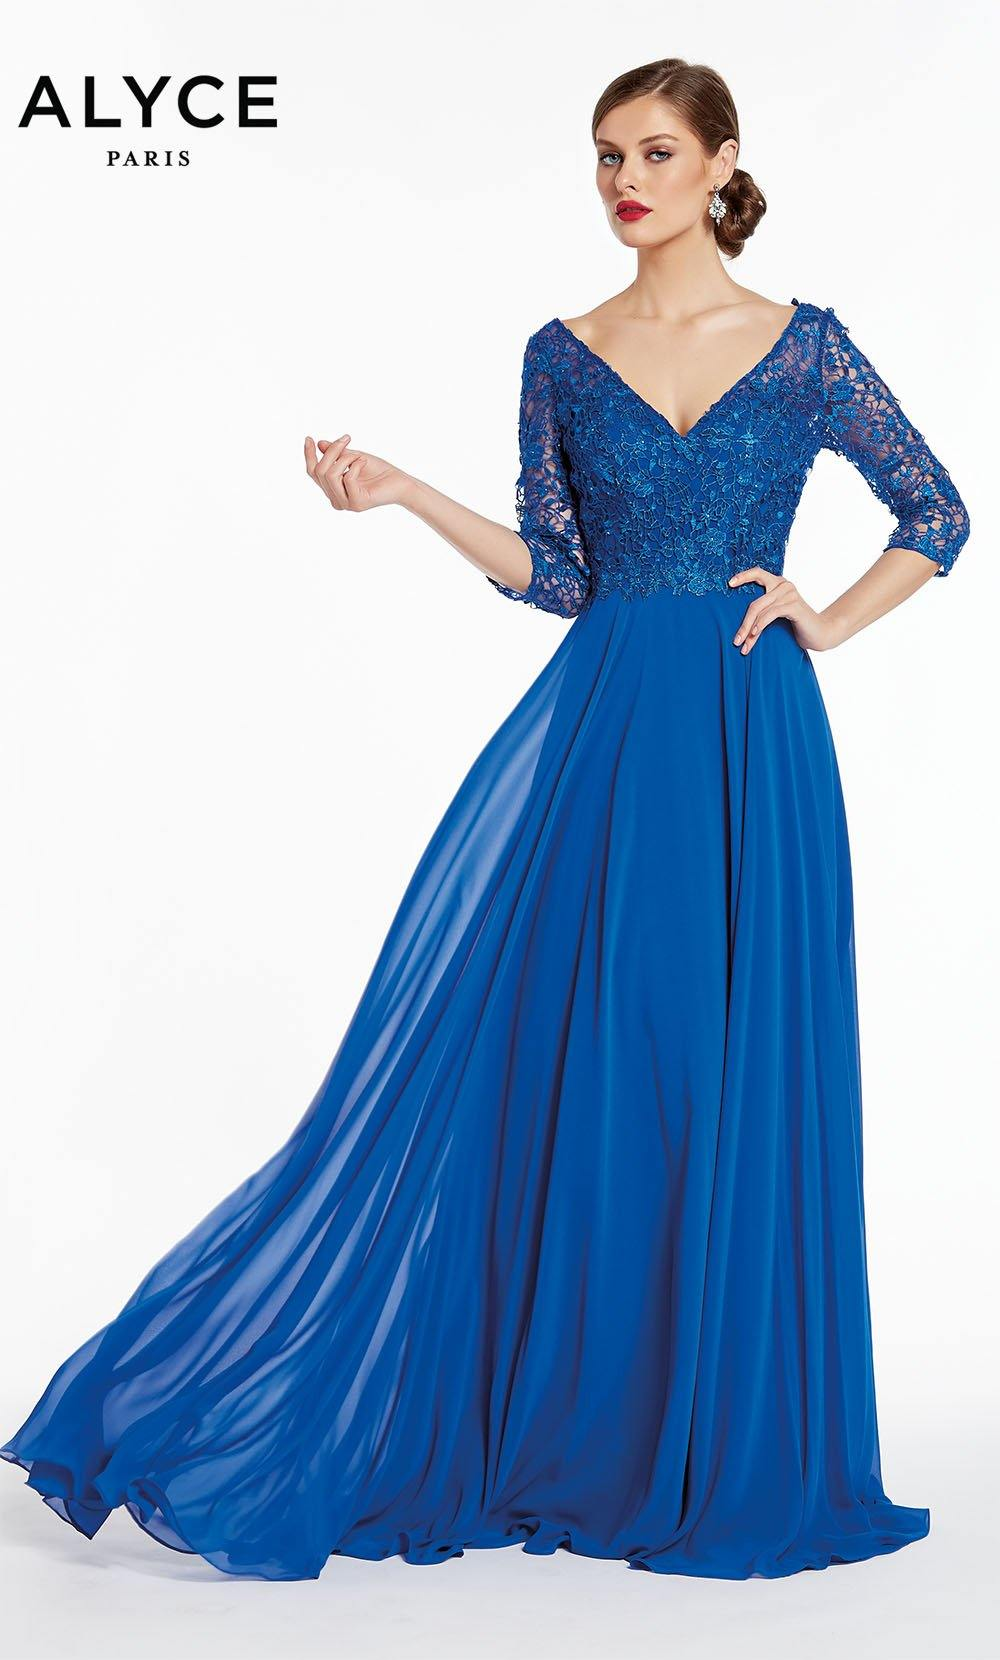 Formal Dress: 27312. Long, V-Neck, Flowy, V Shaped Back